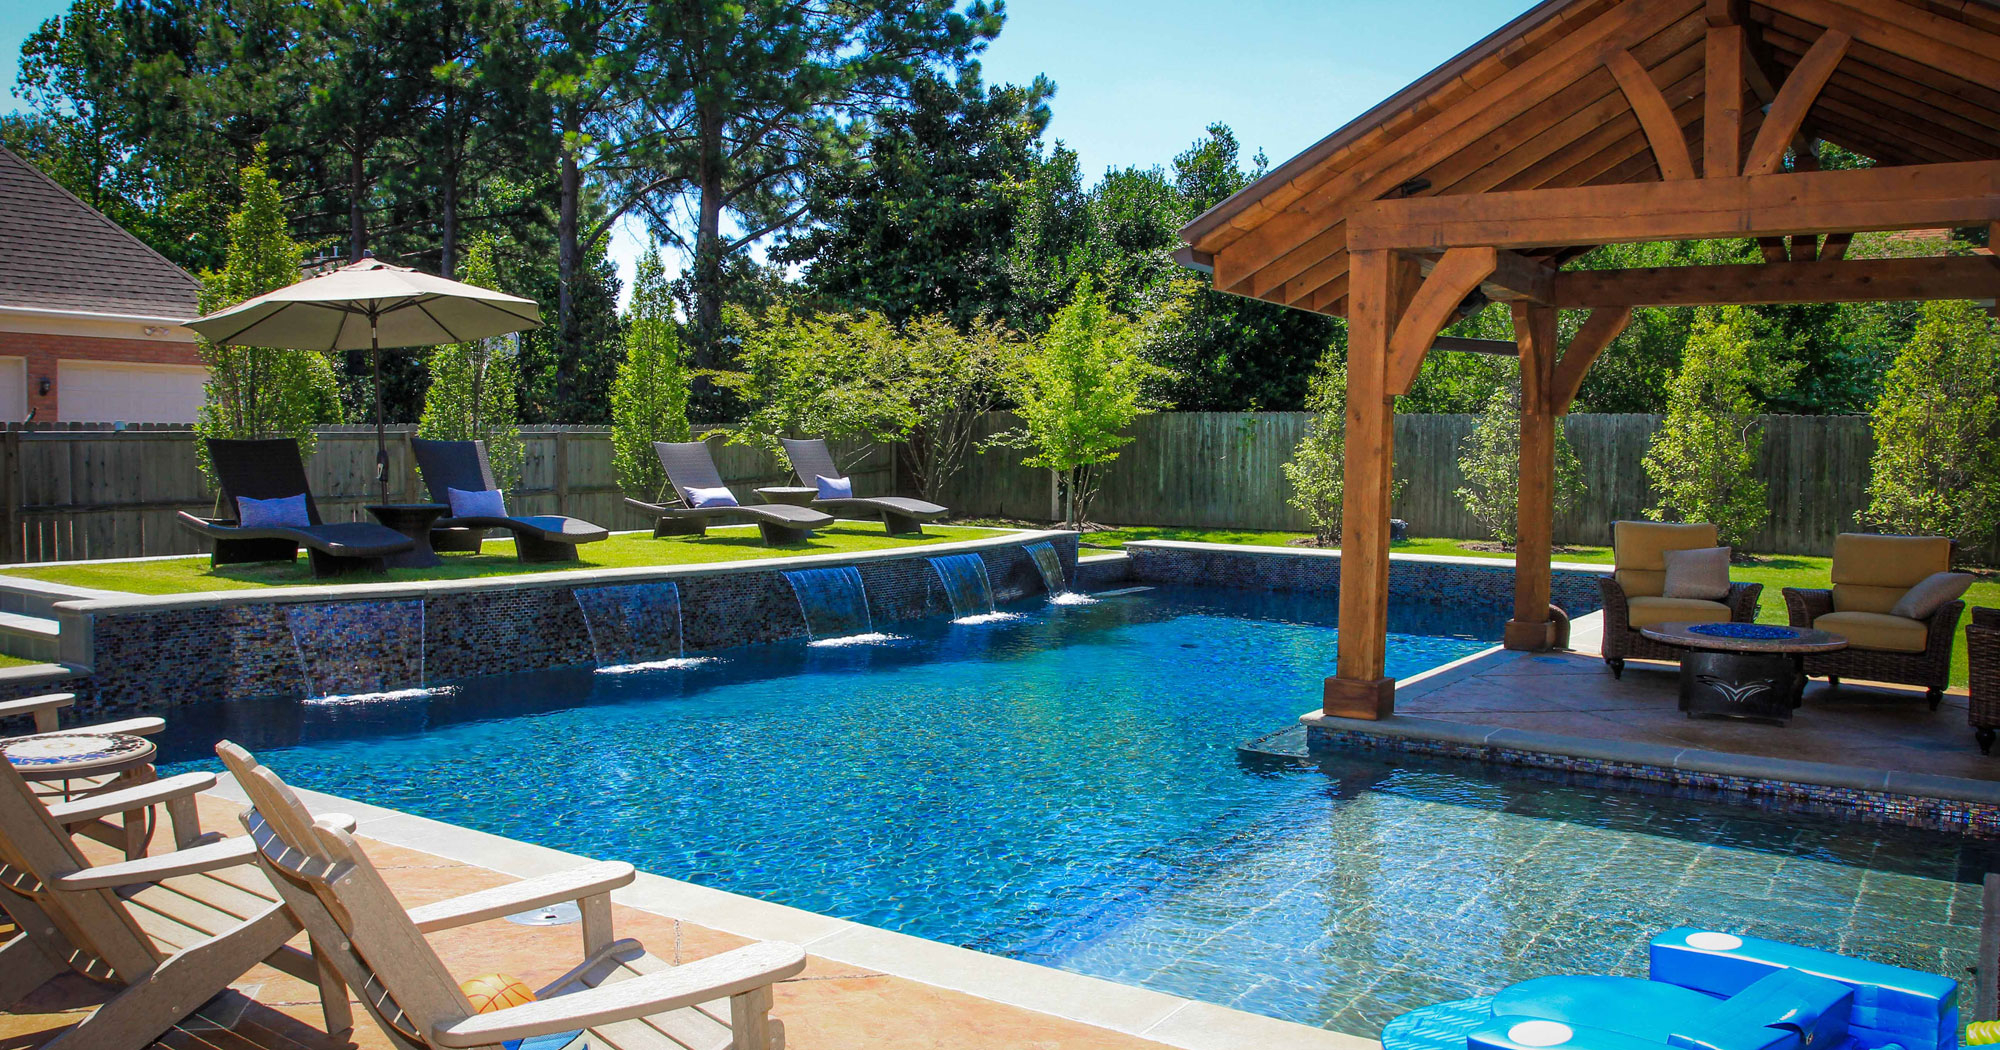 20 Backyard Pool Ideas For The Wealthy Homeowner intended for Pool Ideas For Backyards